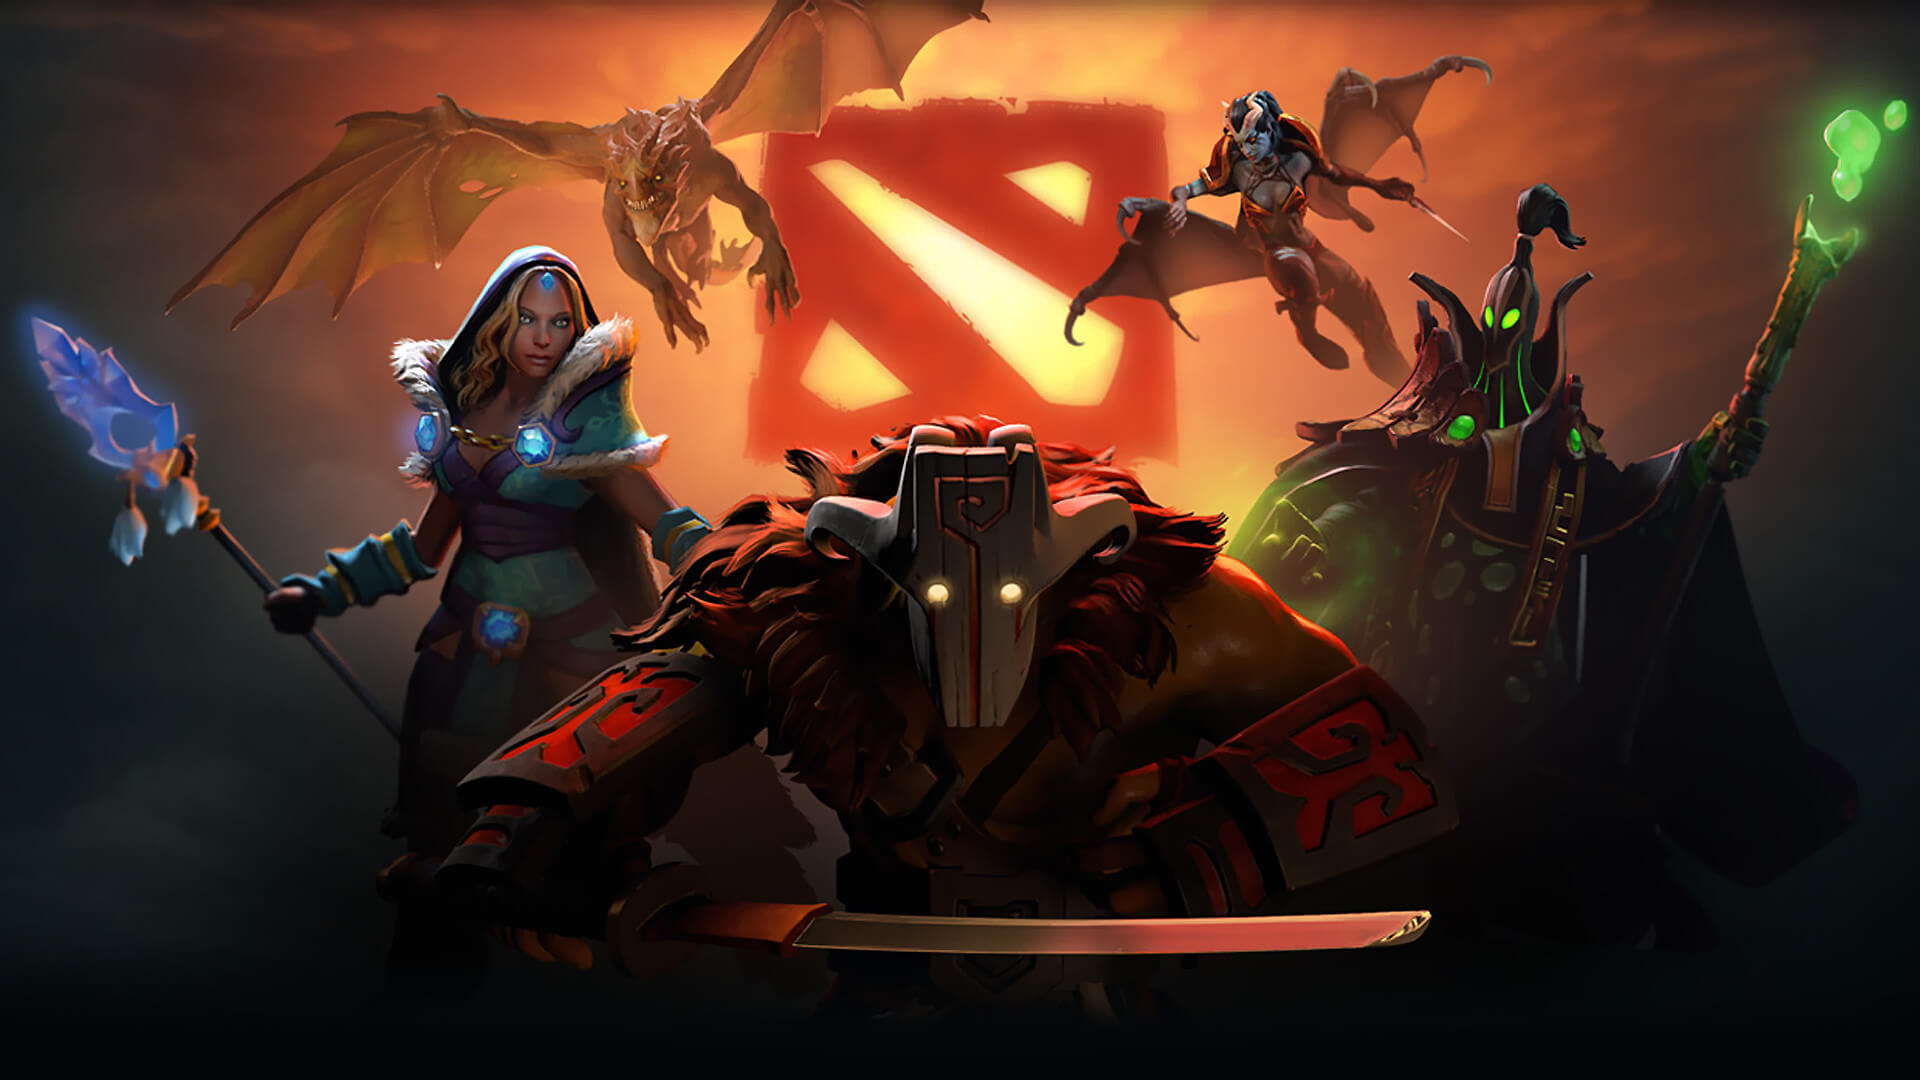 A team of AI bots smashed humans at Dota 2